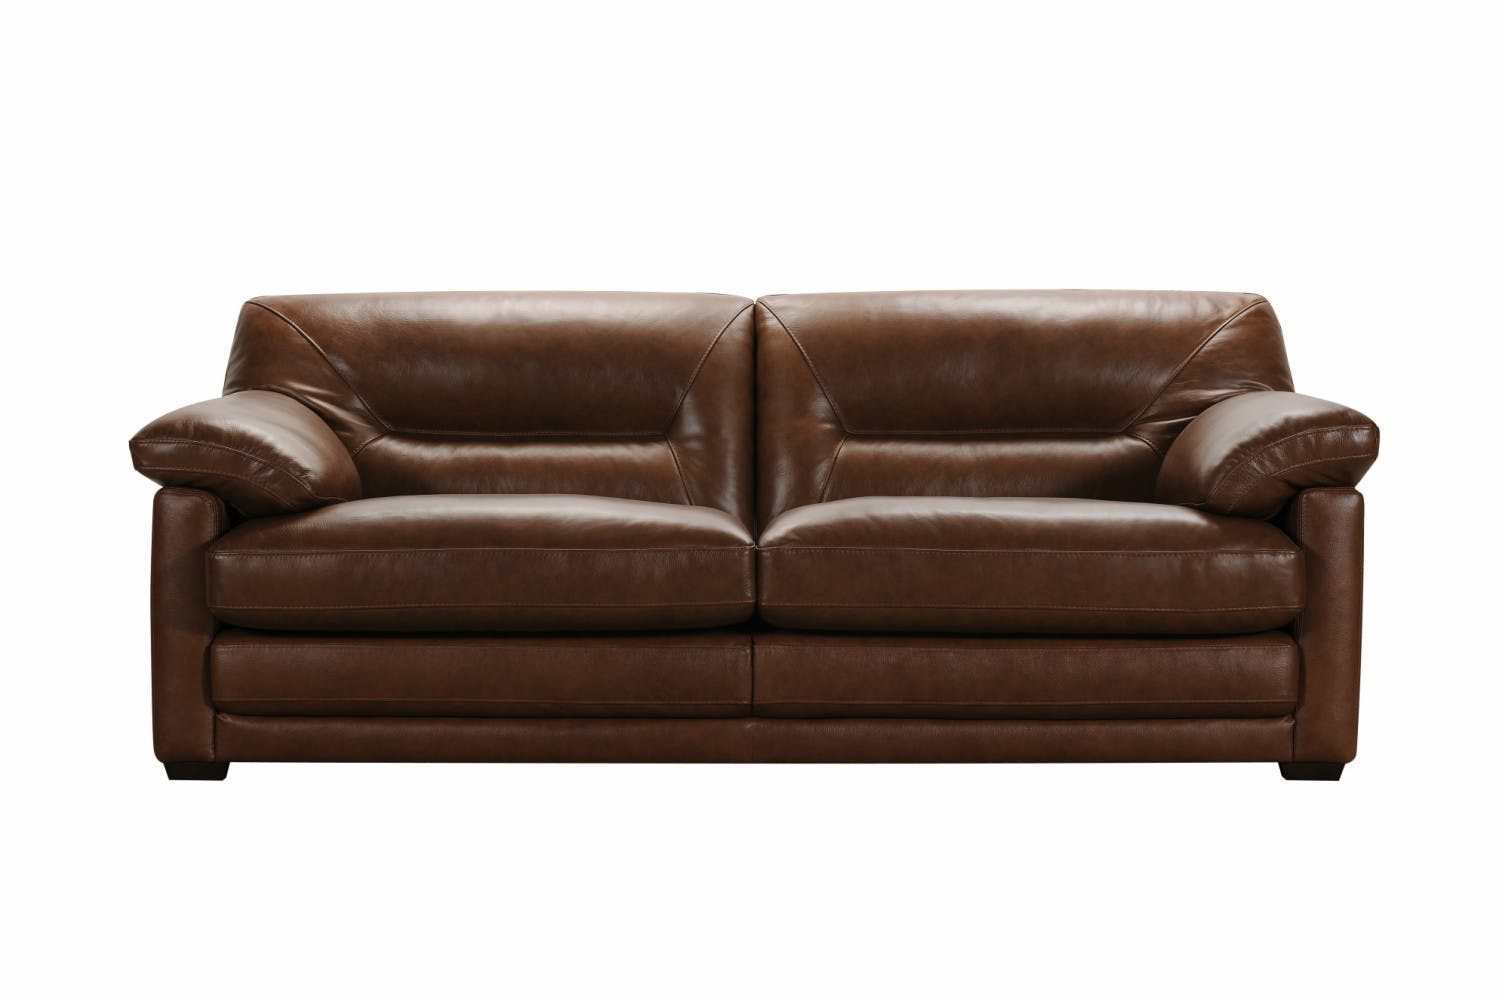 Jaycee 3 Seater | 10 Colour Options